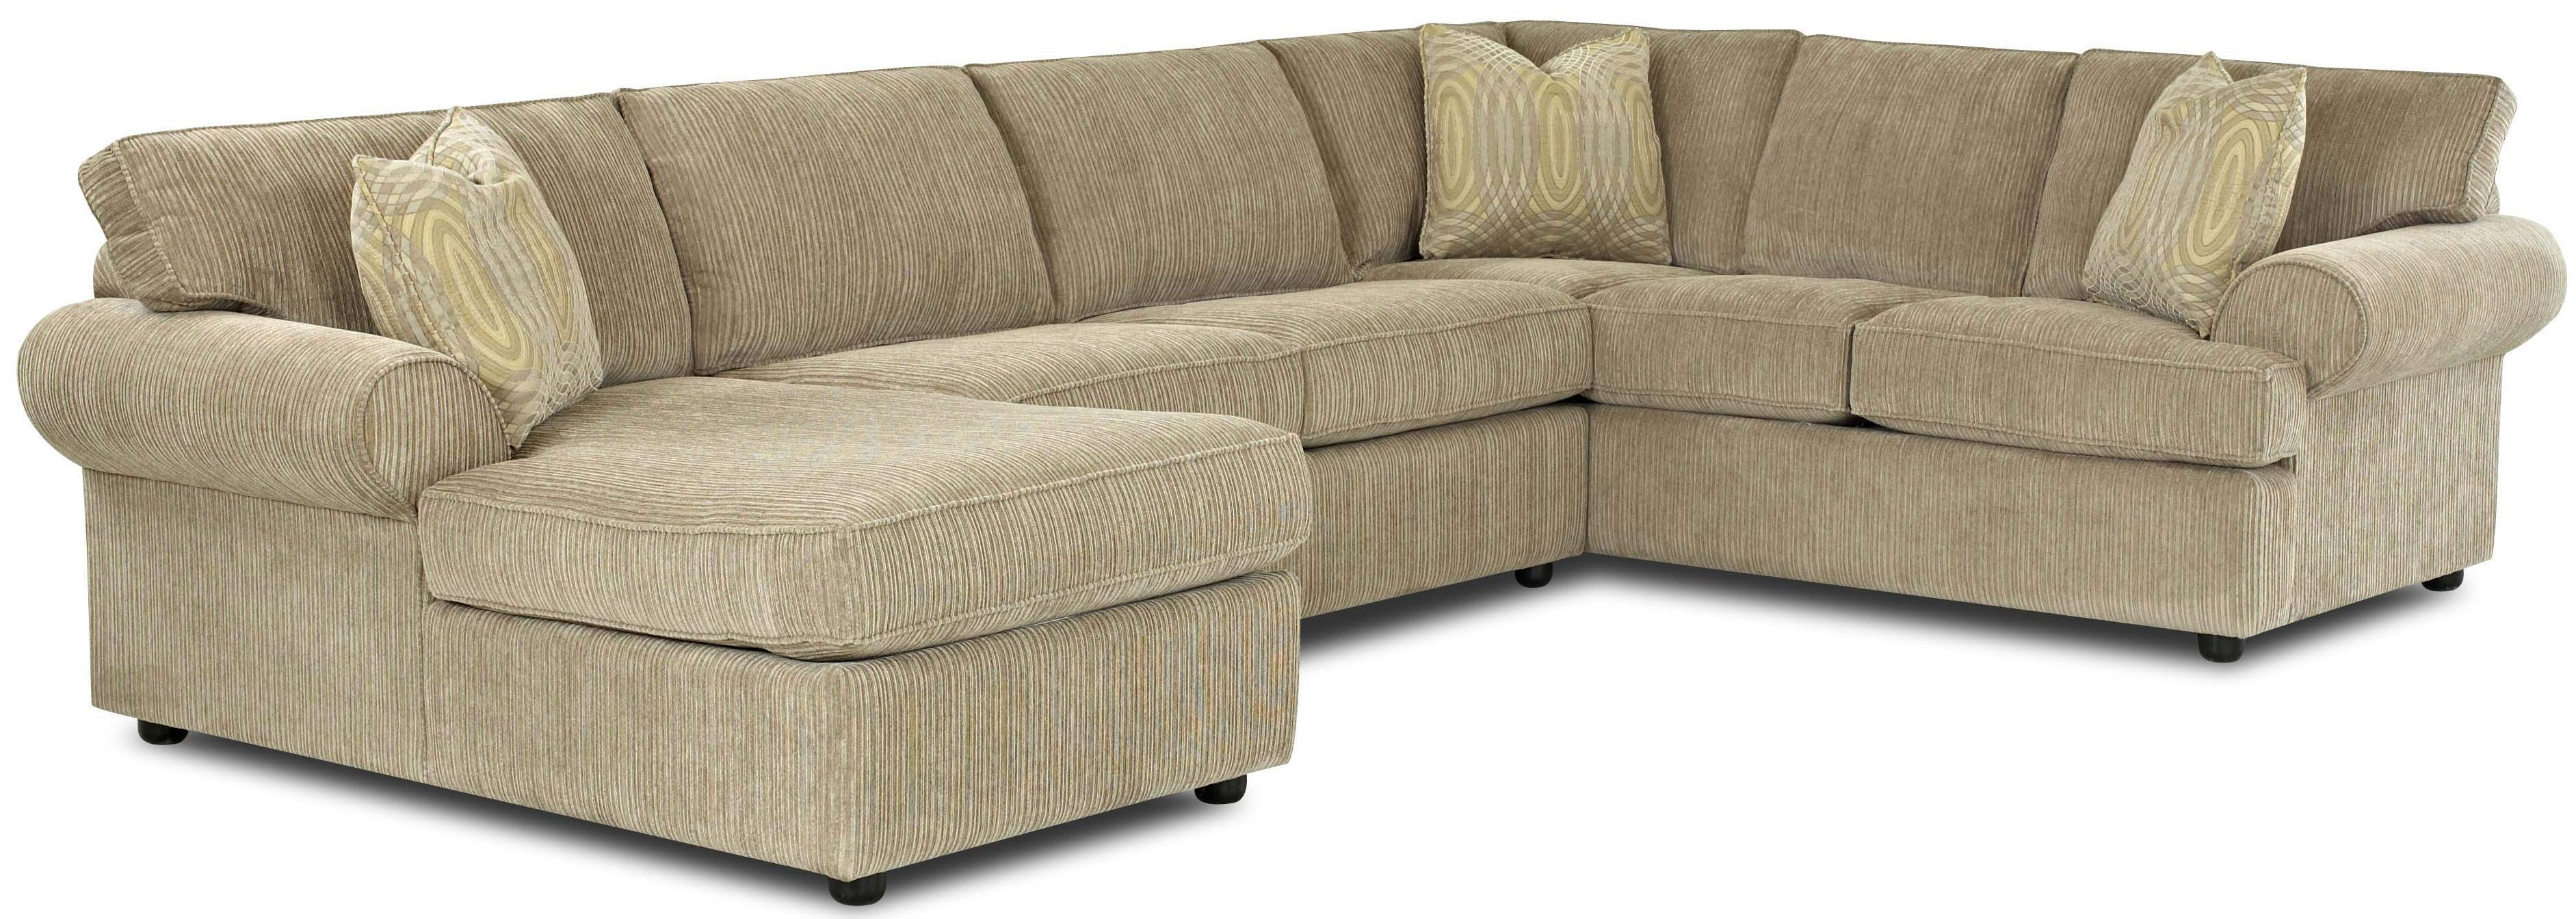 Sectional Sleeper Sofas On Sale – Tourdecarroll In Broyhill Sectional Sleeper Sofas (Image 17 of 20)